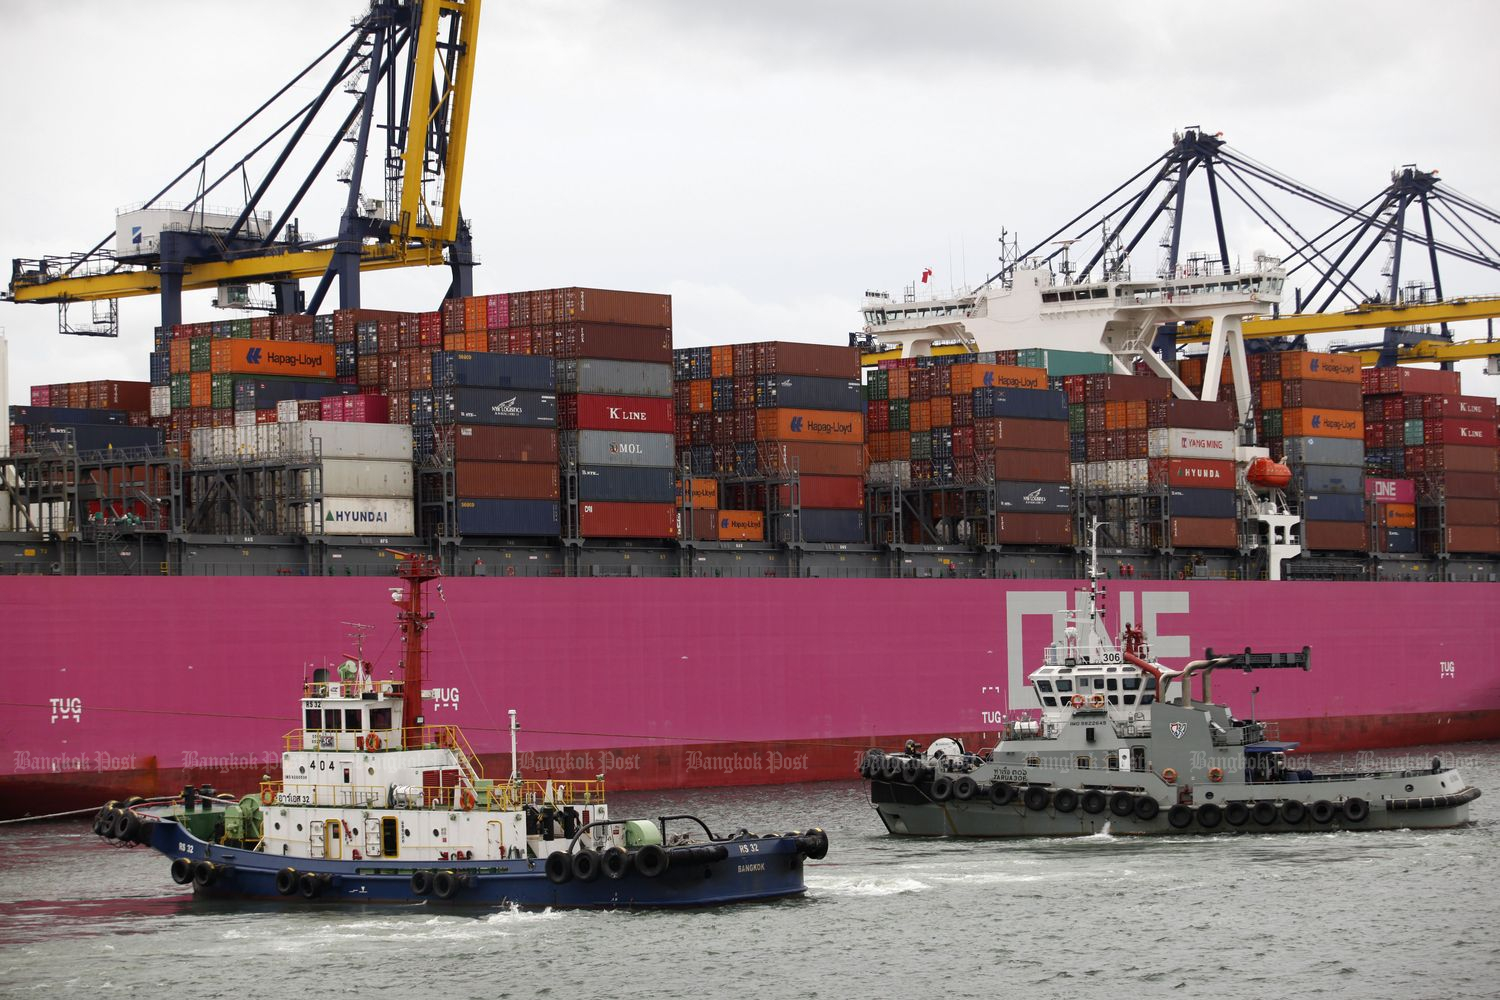 Containers are moved at Laem Chabang port, Chon Buri province, in September 2019. (Bangkok Post file photo)